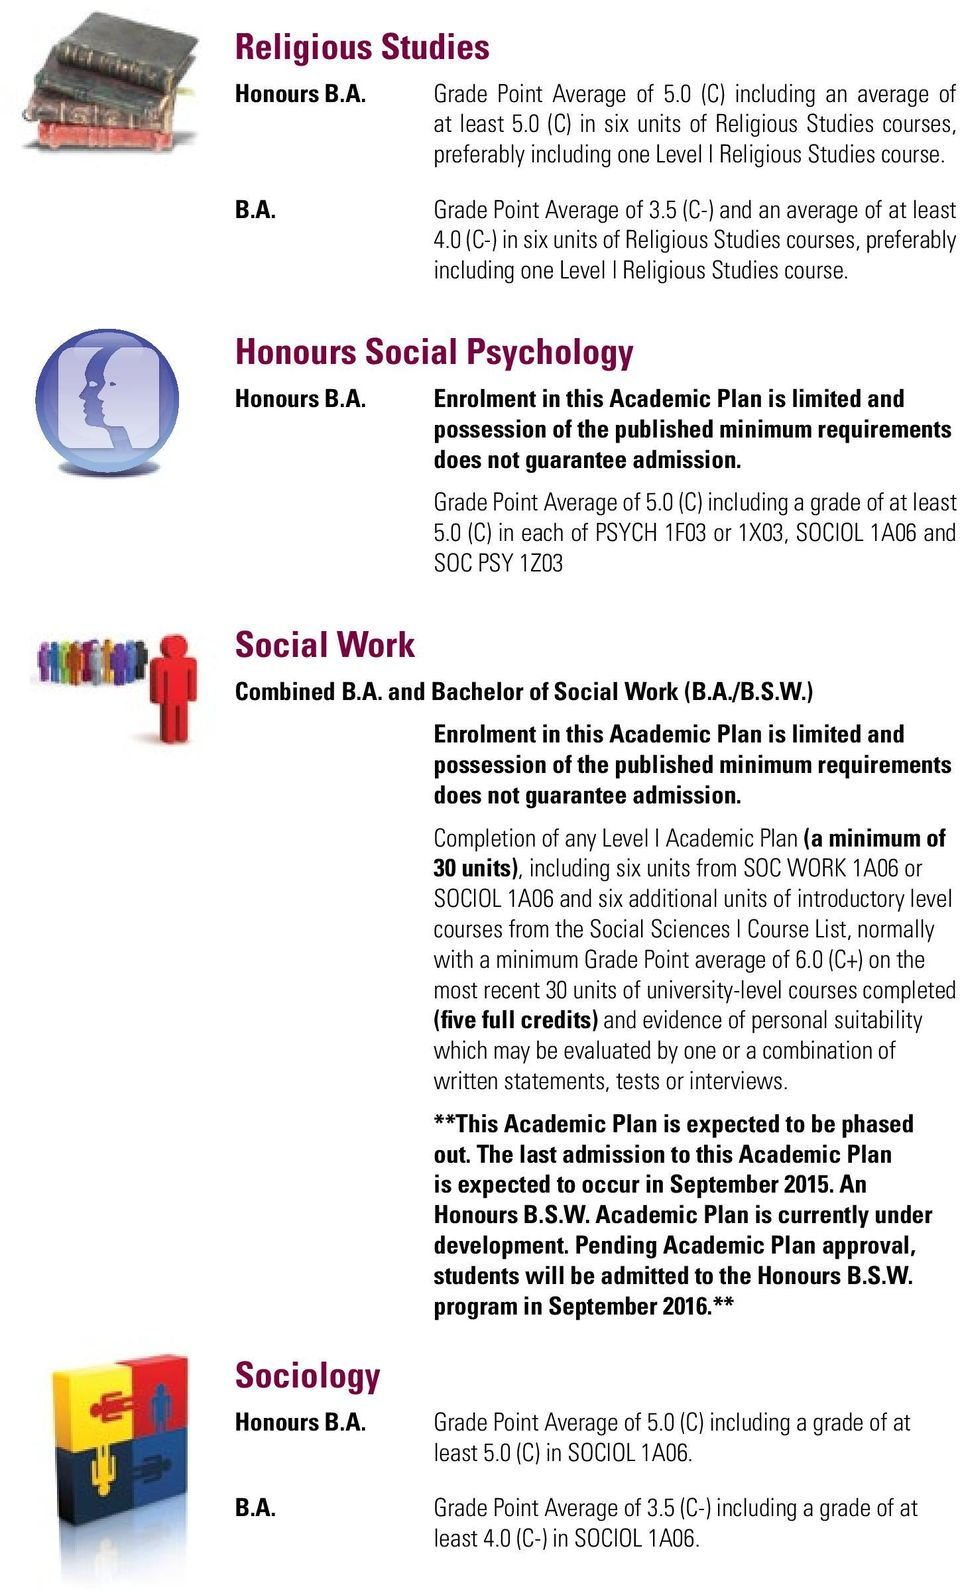 Honours Social Psychology Social Work Enrolment in this Academic Plan is limited and possession of the published minimum requirements does not guarantee admission. Grade Point Average of 5.